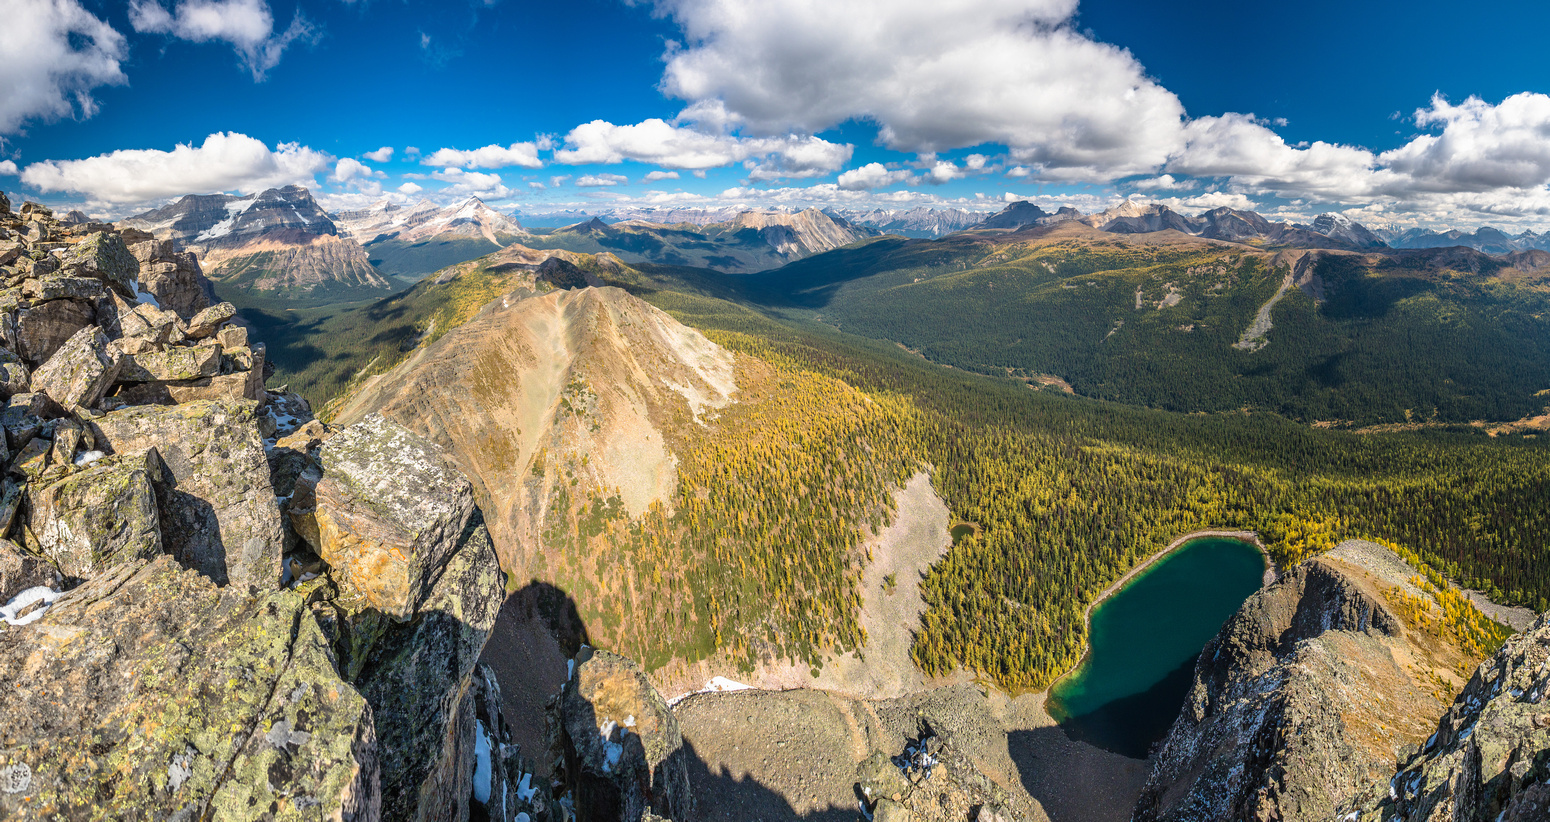 Black Rock Lake sits below the peak in this view looking north down the Pharaoh (R) and Redearth (L) Creek valleys.